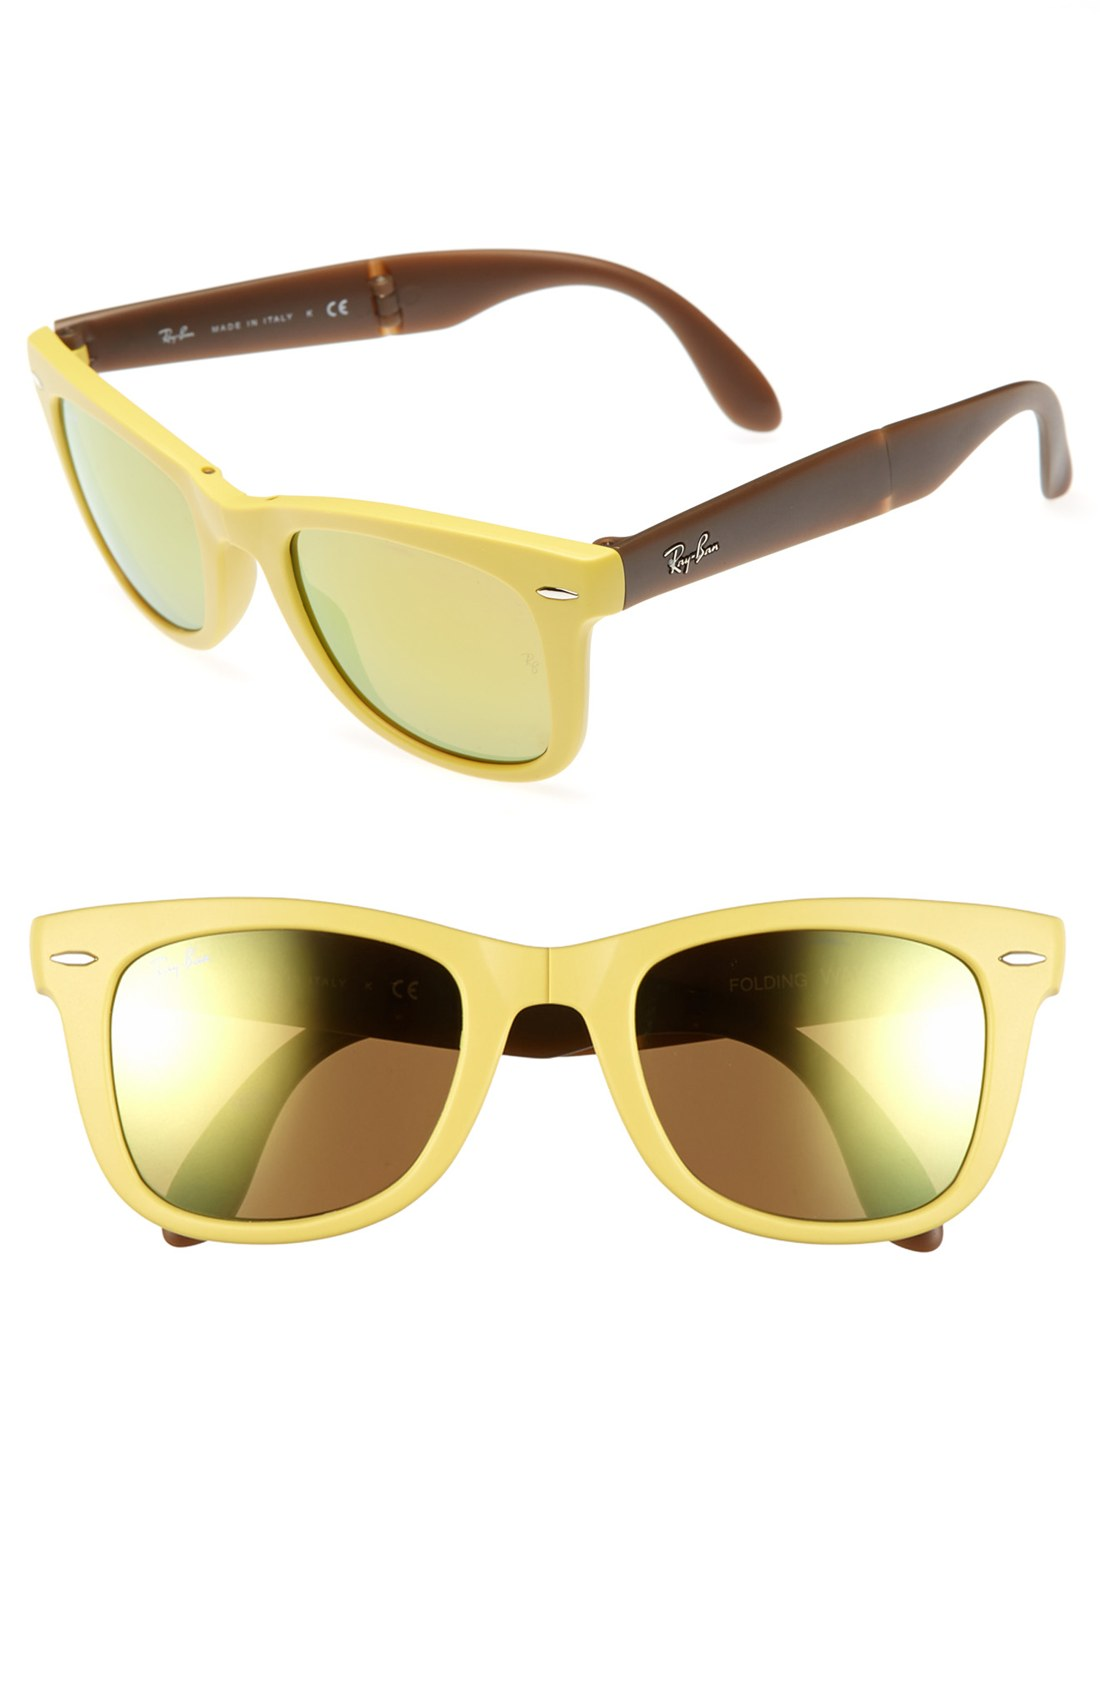 ray ban folding wayfarer 50mm sunglasses in khaki matte yellow lyst. Black Bedroom Furniture Sets. Home Design Ideas